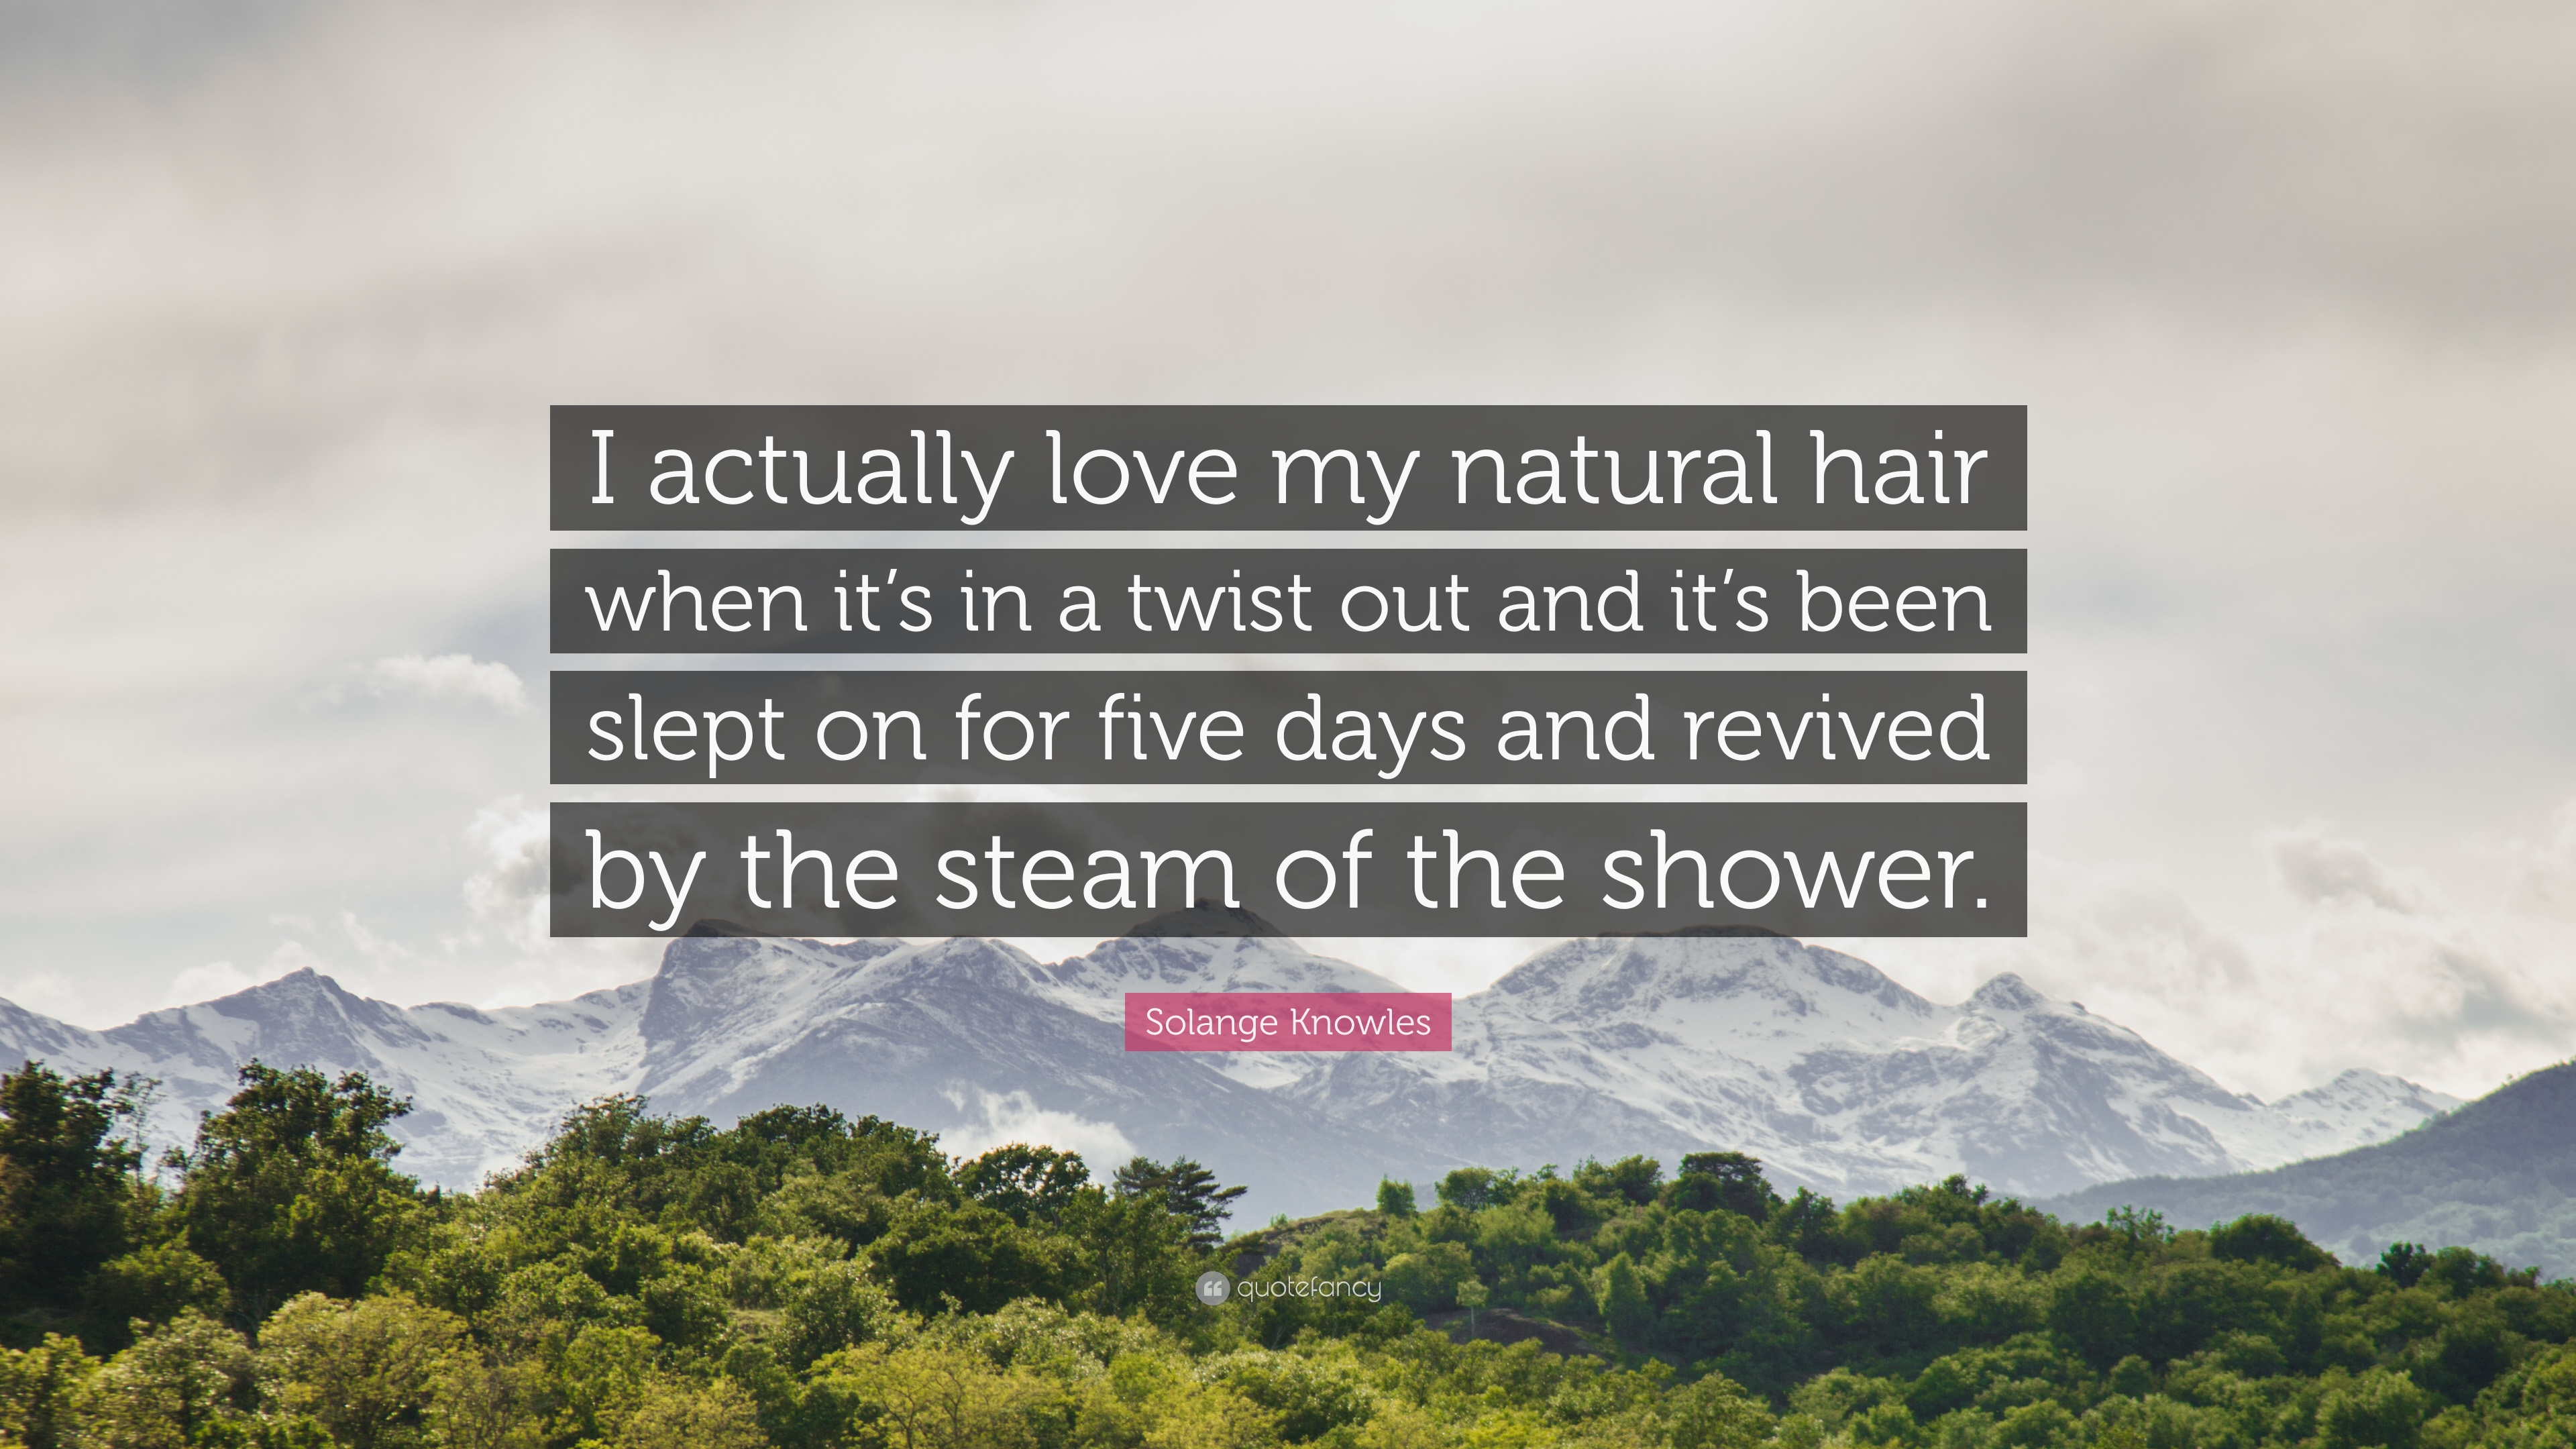 Solange Knowles Quote I Actually Love My Natural Hair When It S In A Twist Out And It S Been Slept On For Five Days And Revived By The Steam O 7 Wallpapers Quotefancy